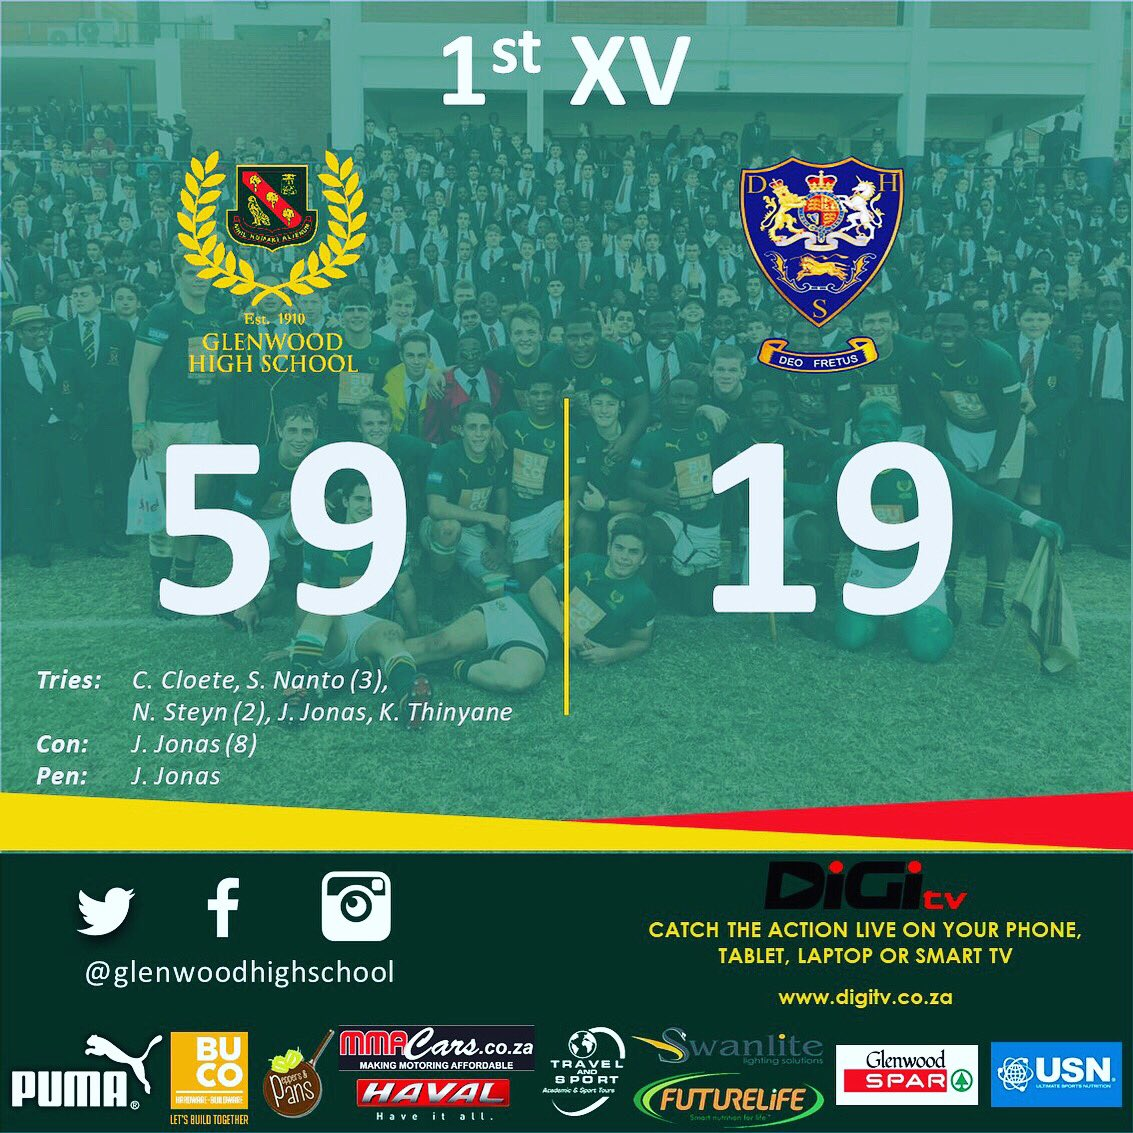 D7-9UzzXoAAAgrR School of Rugby | School Rugby Results - 6 April 2019 - School of Rugby